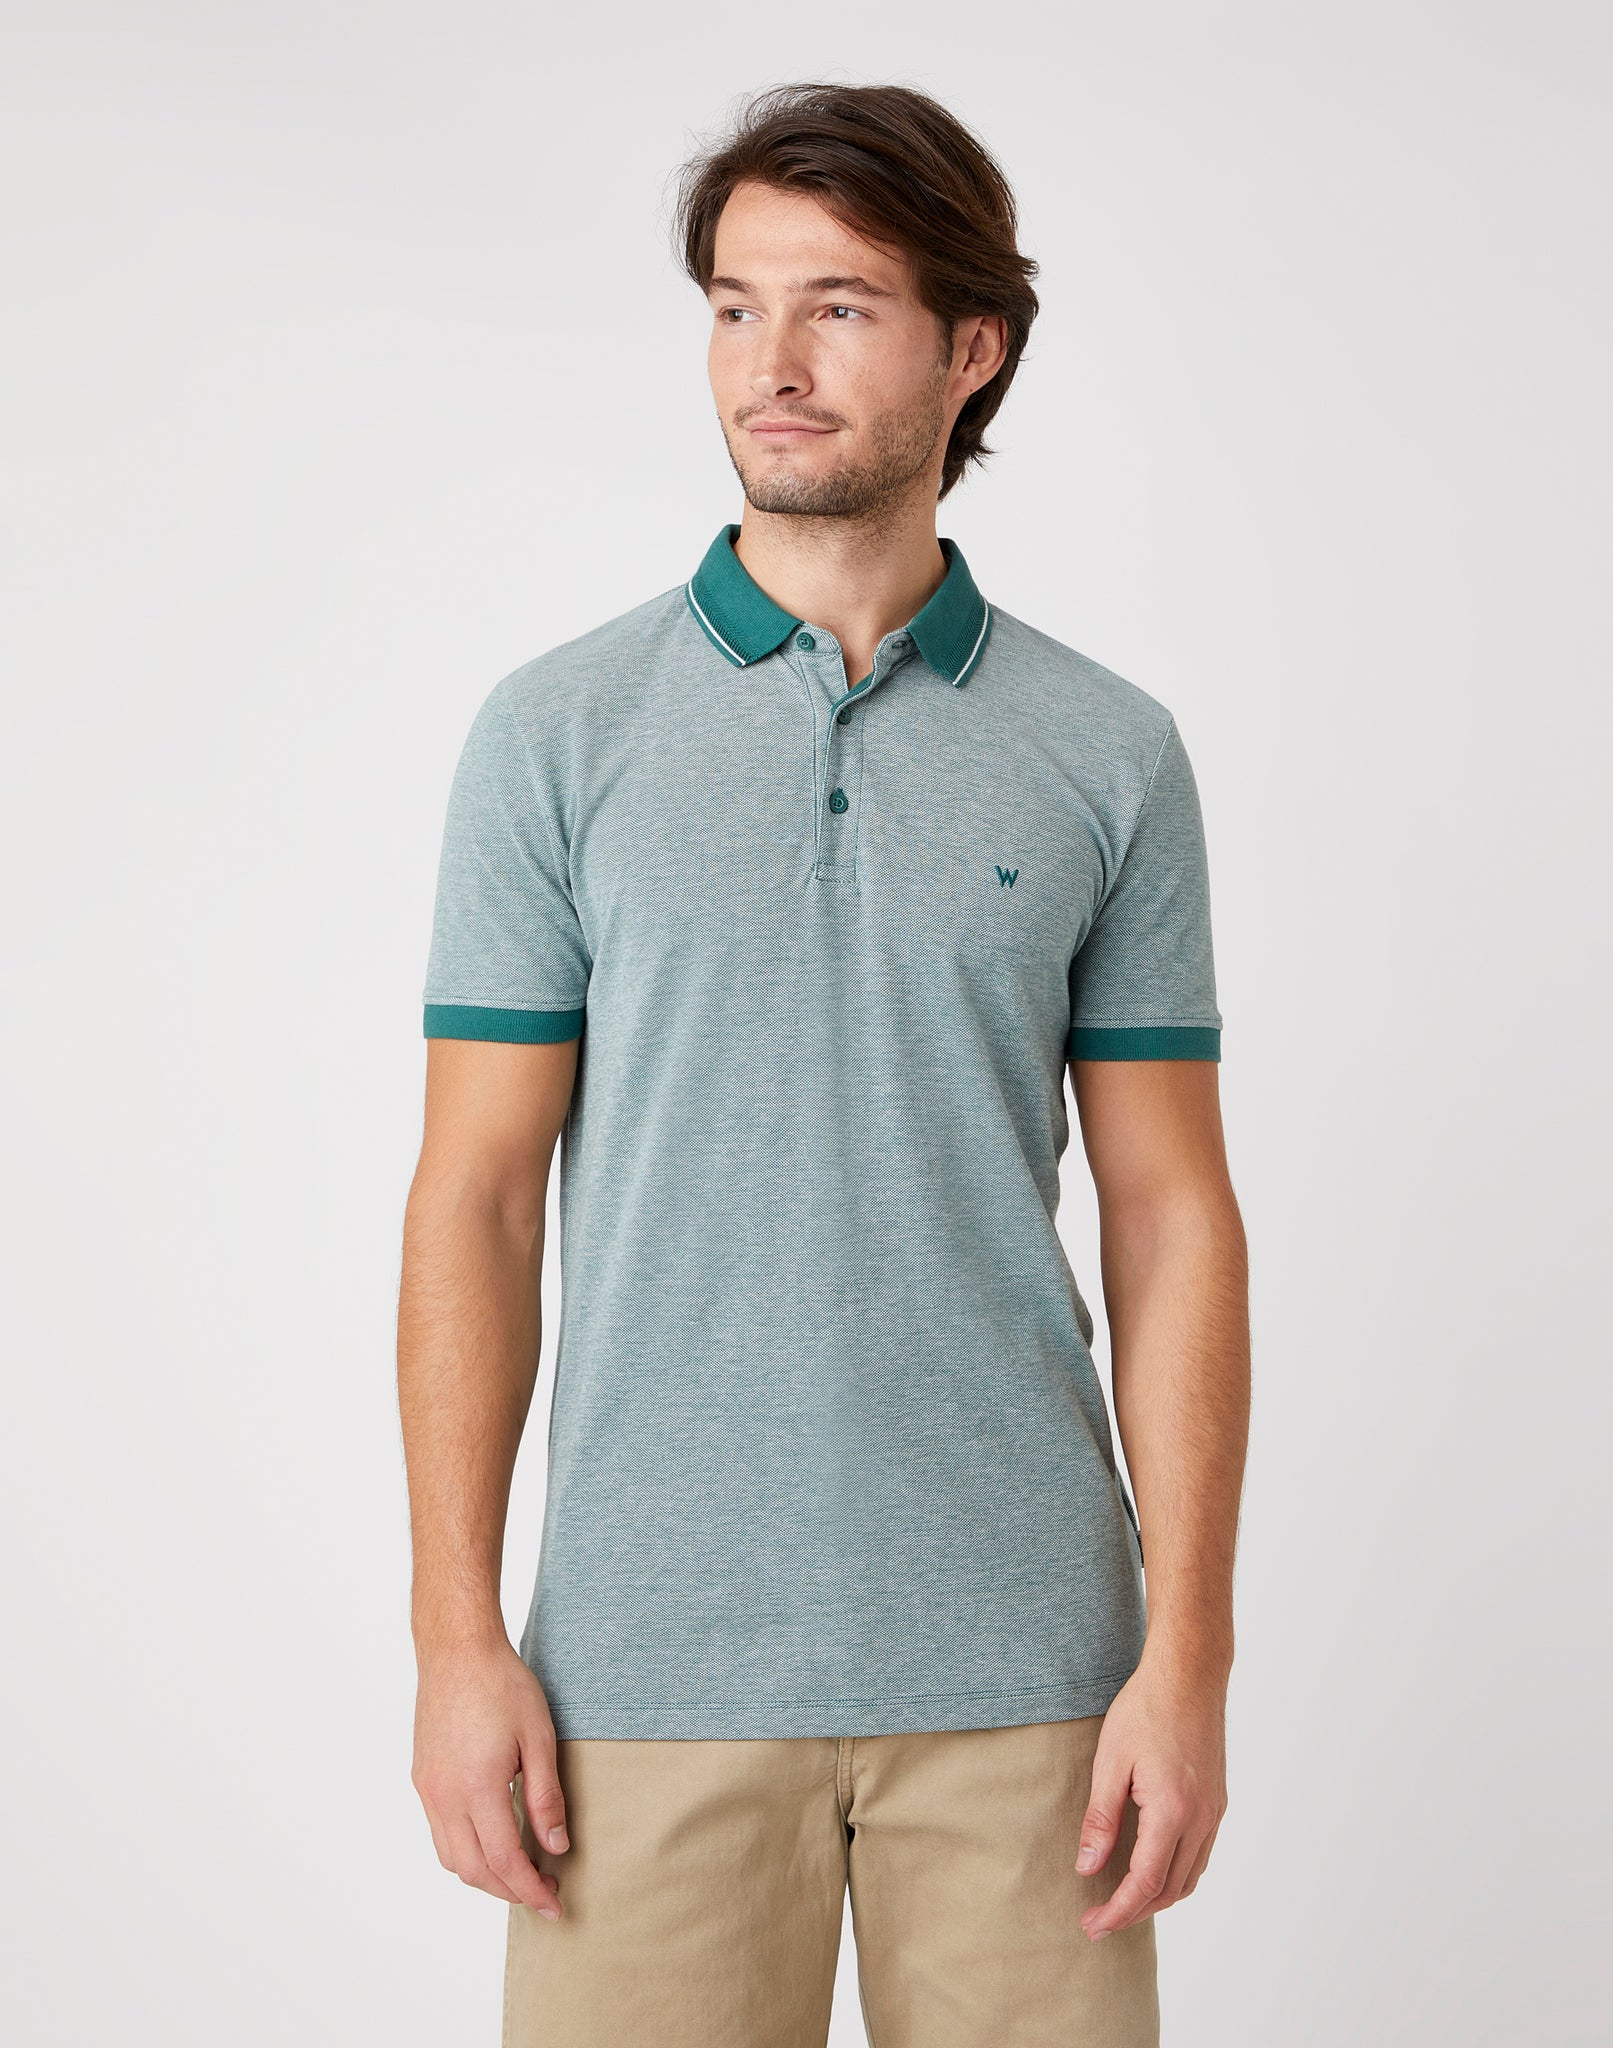 Organic cotton short sleeve polo shirt with regular fit in green with dark green collar and hems by iconic USA brand Wrangler.